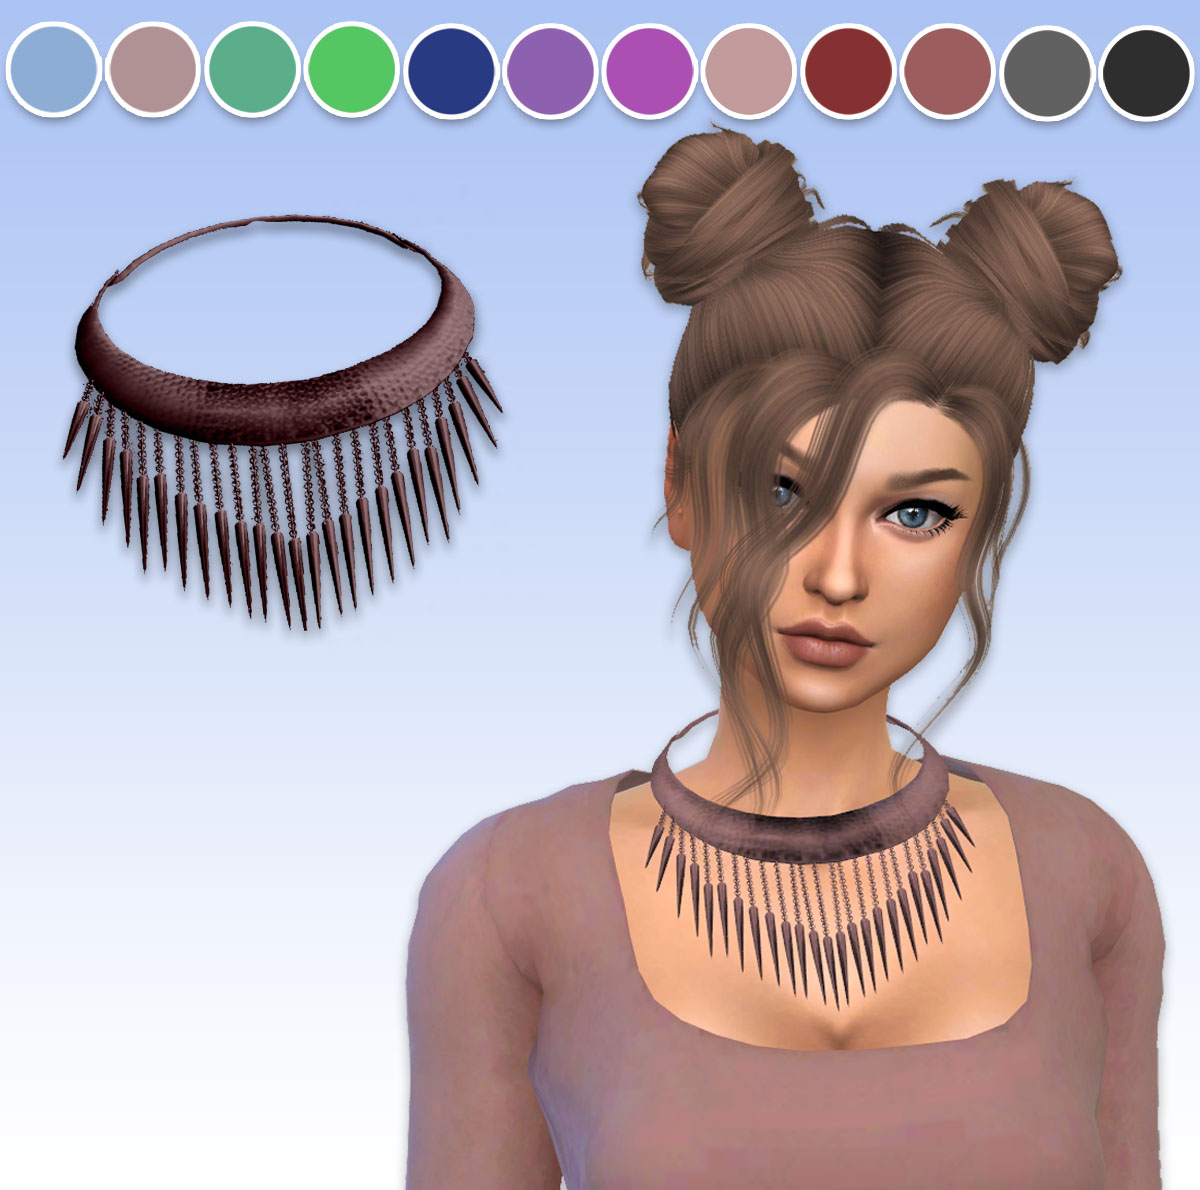 TS3 Spiked Necklace Conversion by ArthurLumiereCC